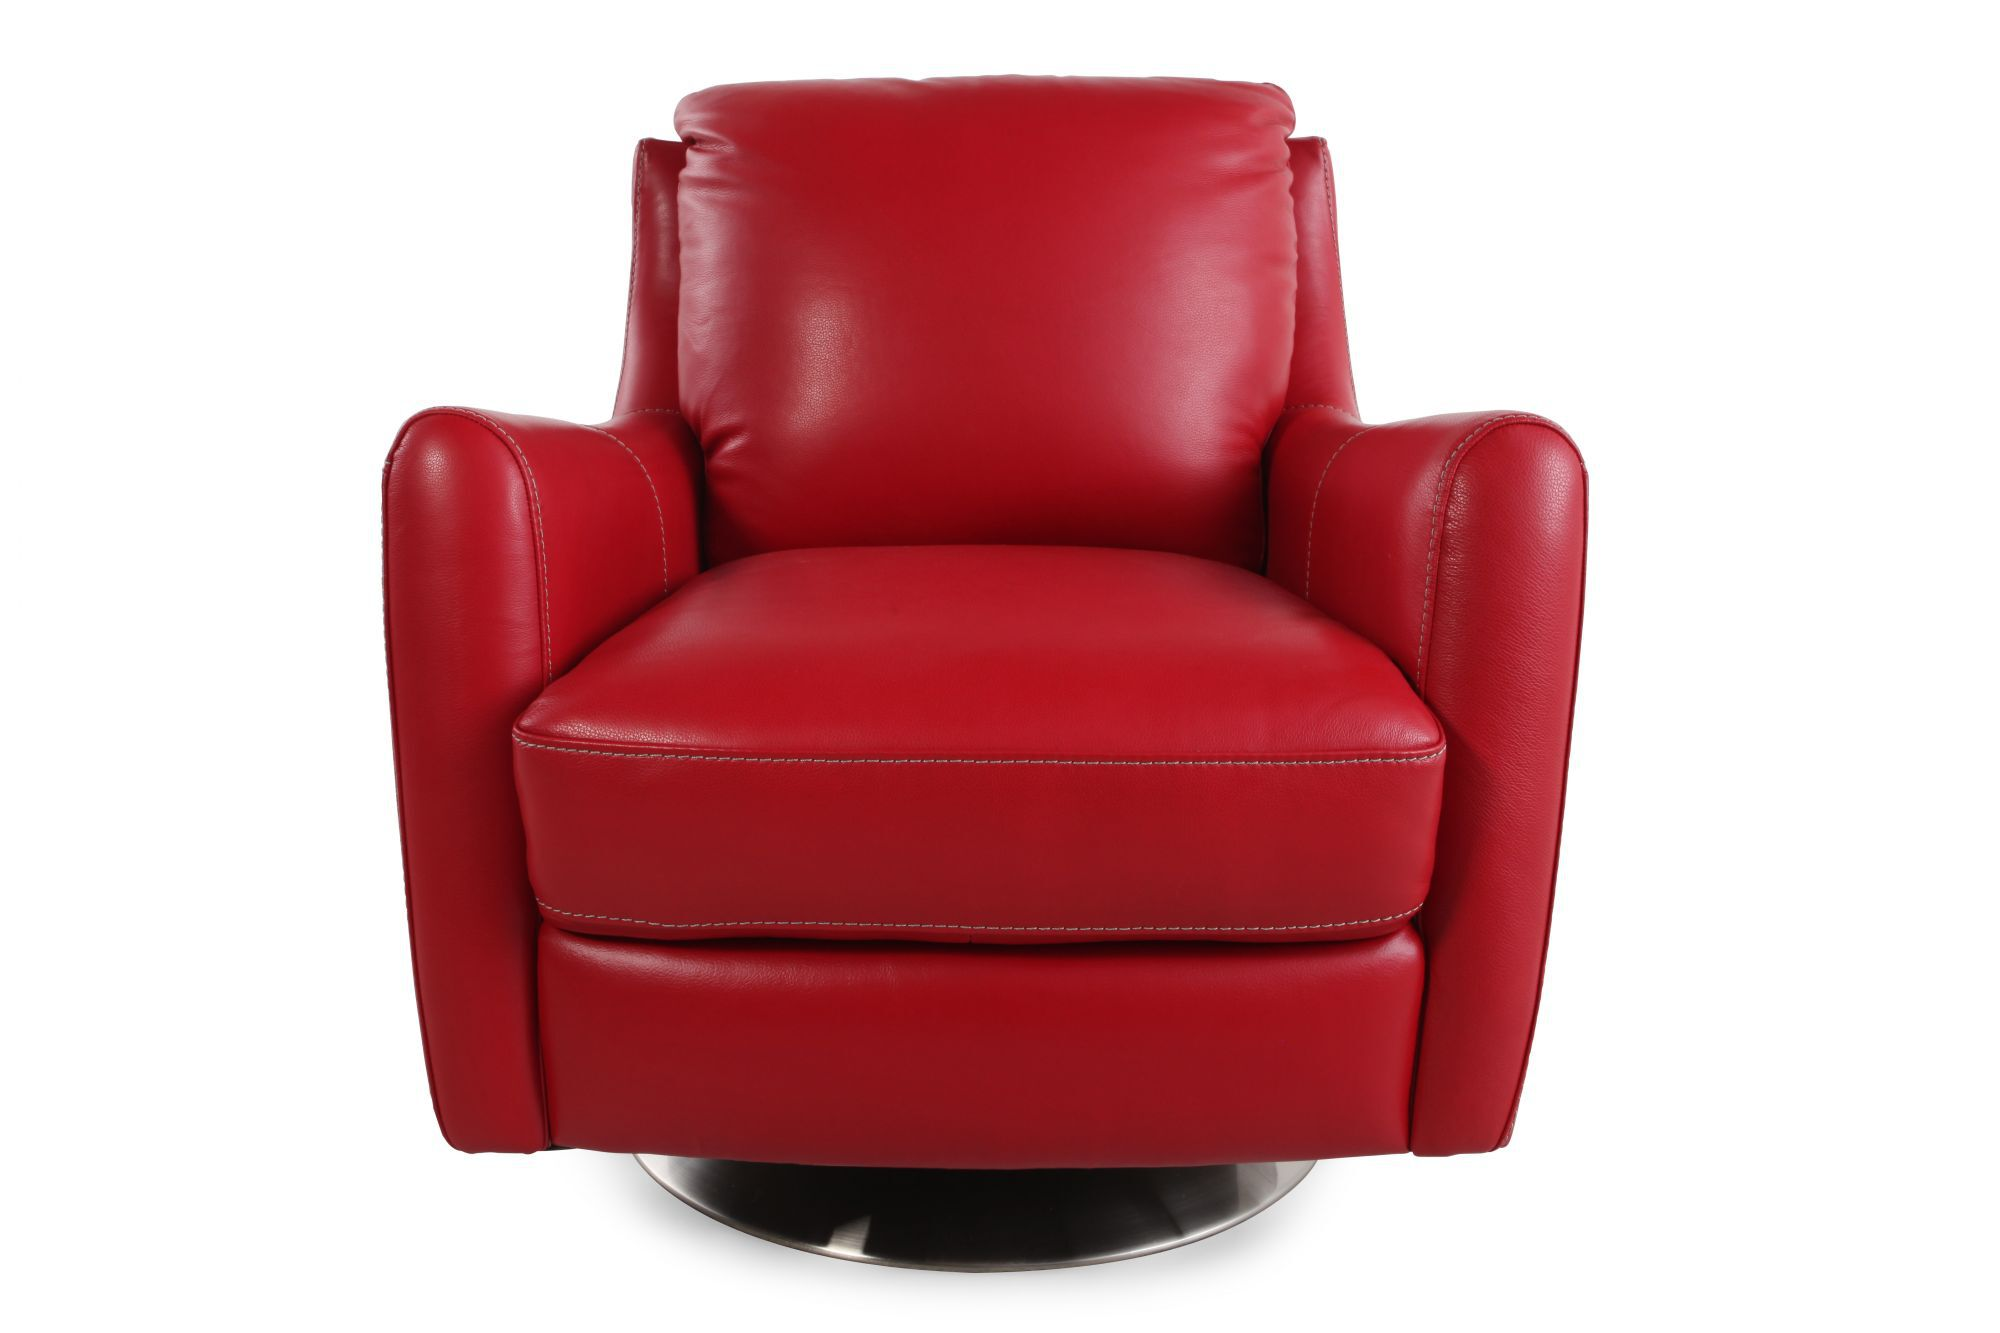 LaZBoy Xavier Red Leather Swivel Chair  Mathis Brothers